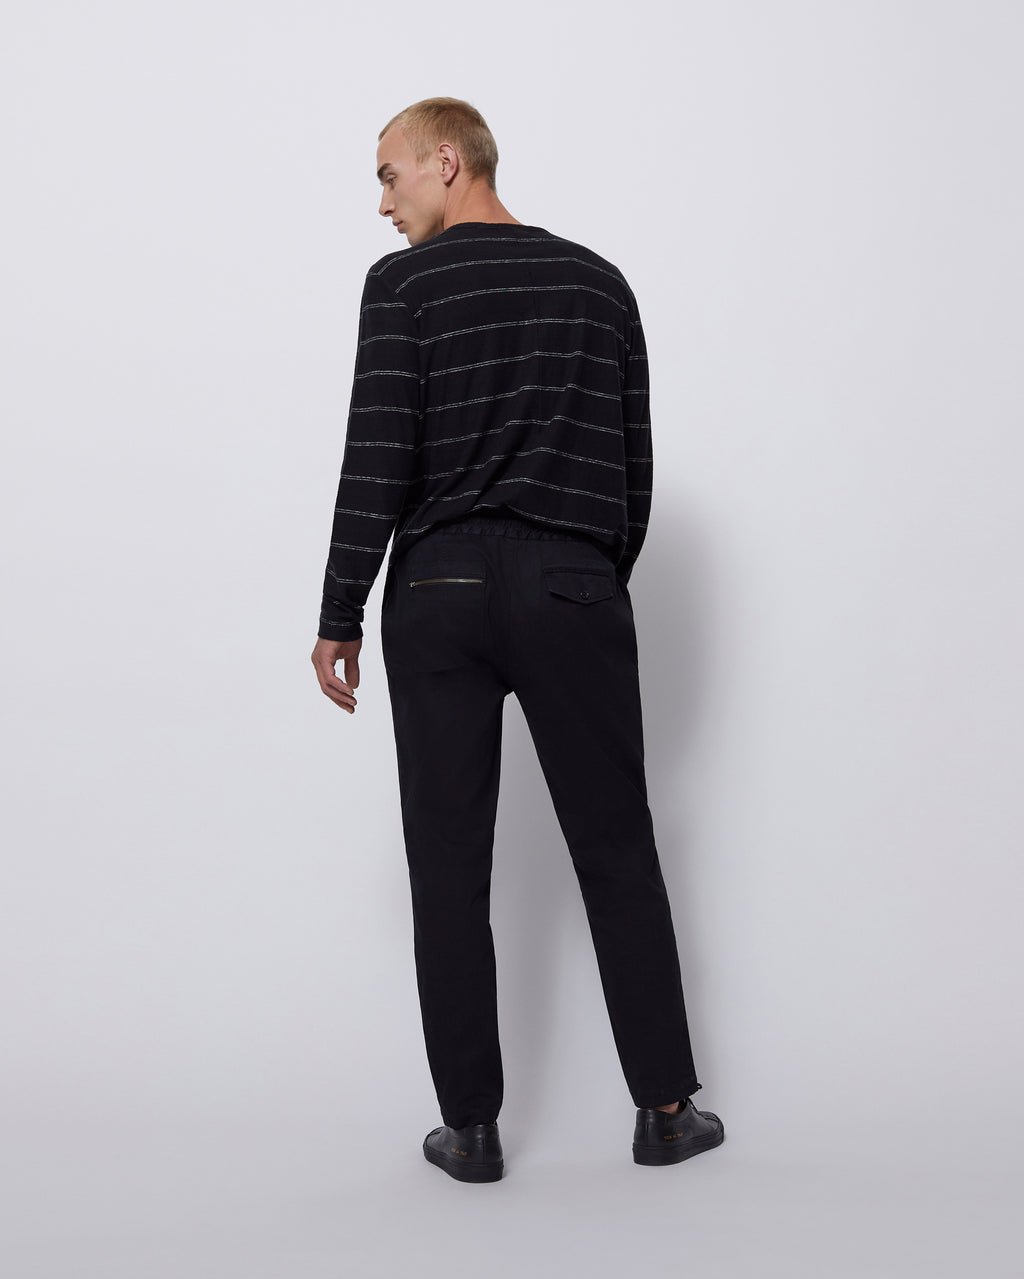 The Wakeman Pant in Washed Black